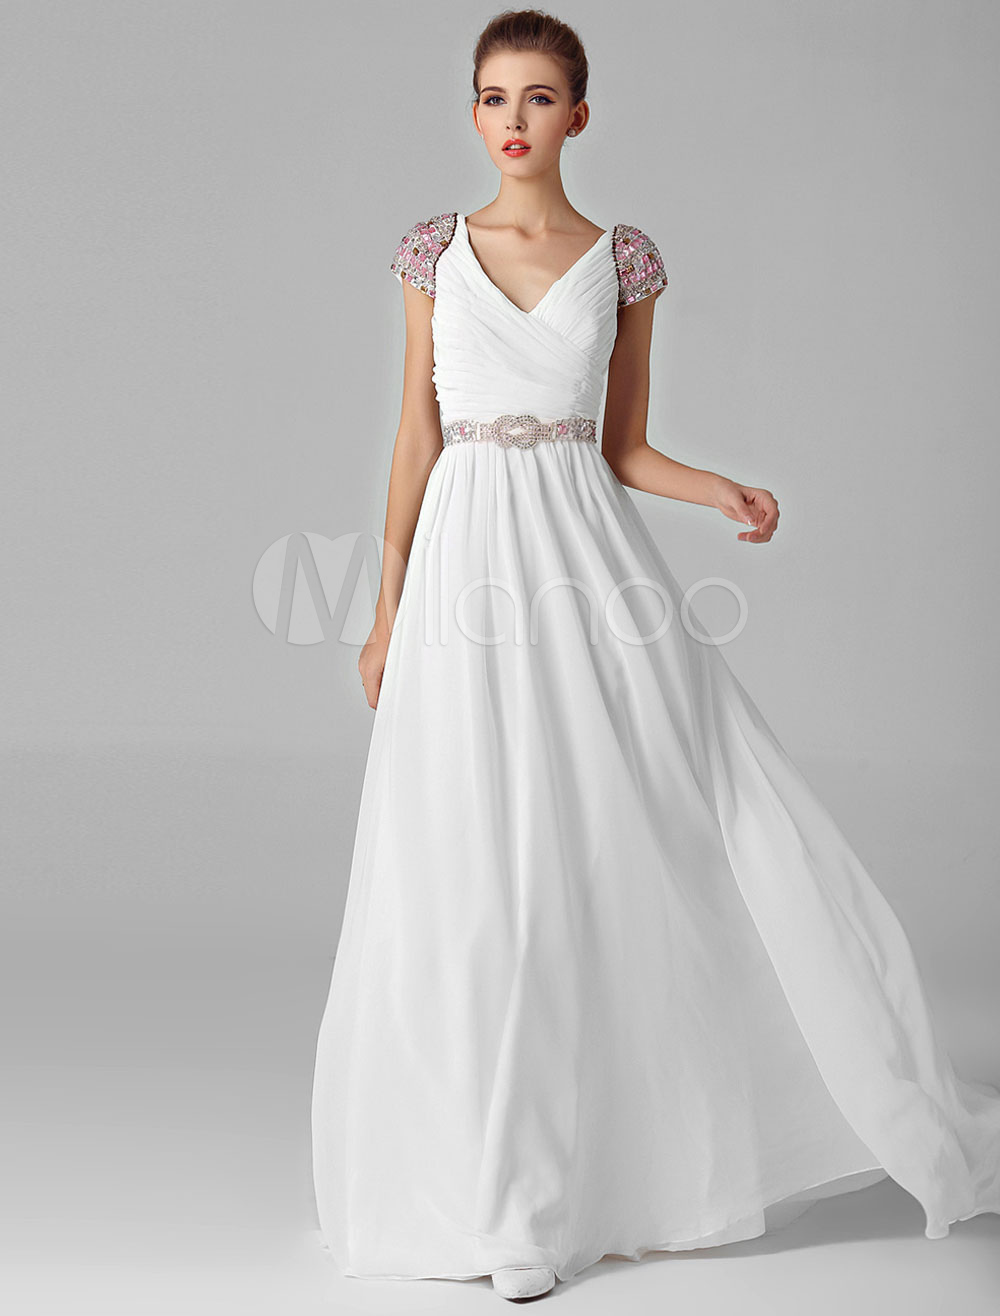 3ab48dea7f476 Beading Cap Sleeves Ruched Bodice Chiffon Evening Dress with tonal Beading  Belt - Milanoo.com